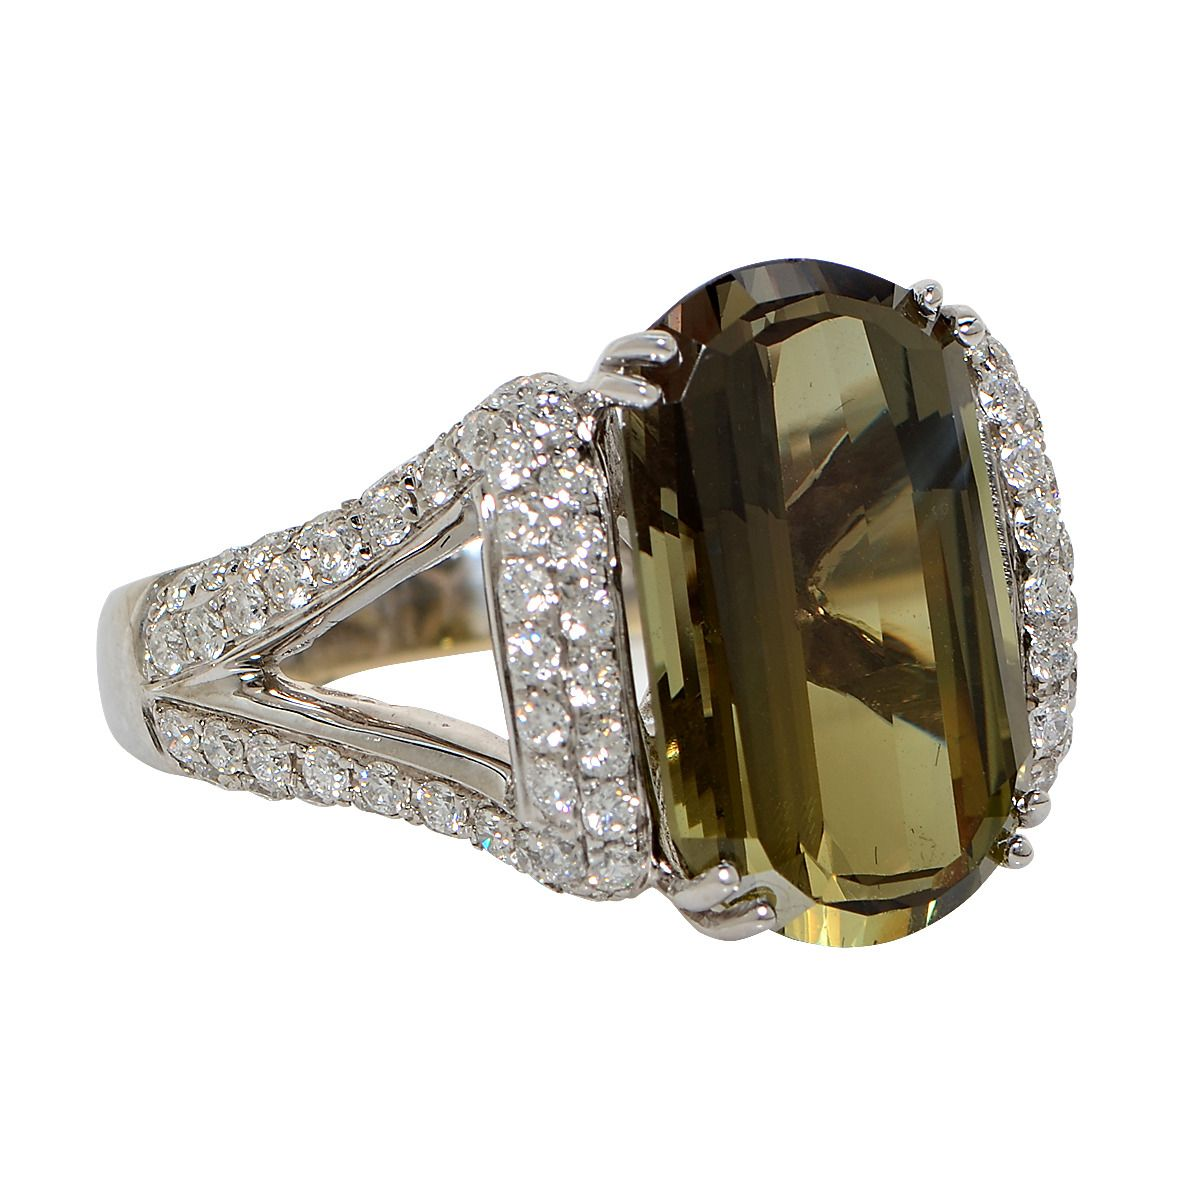 11.42 Carat Alexandrite Diamond Gold Ring | From a unique collection of vintage more rings at https://www.1stdibs.com/jewelry/rings/more-rings/